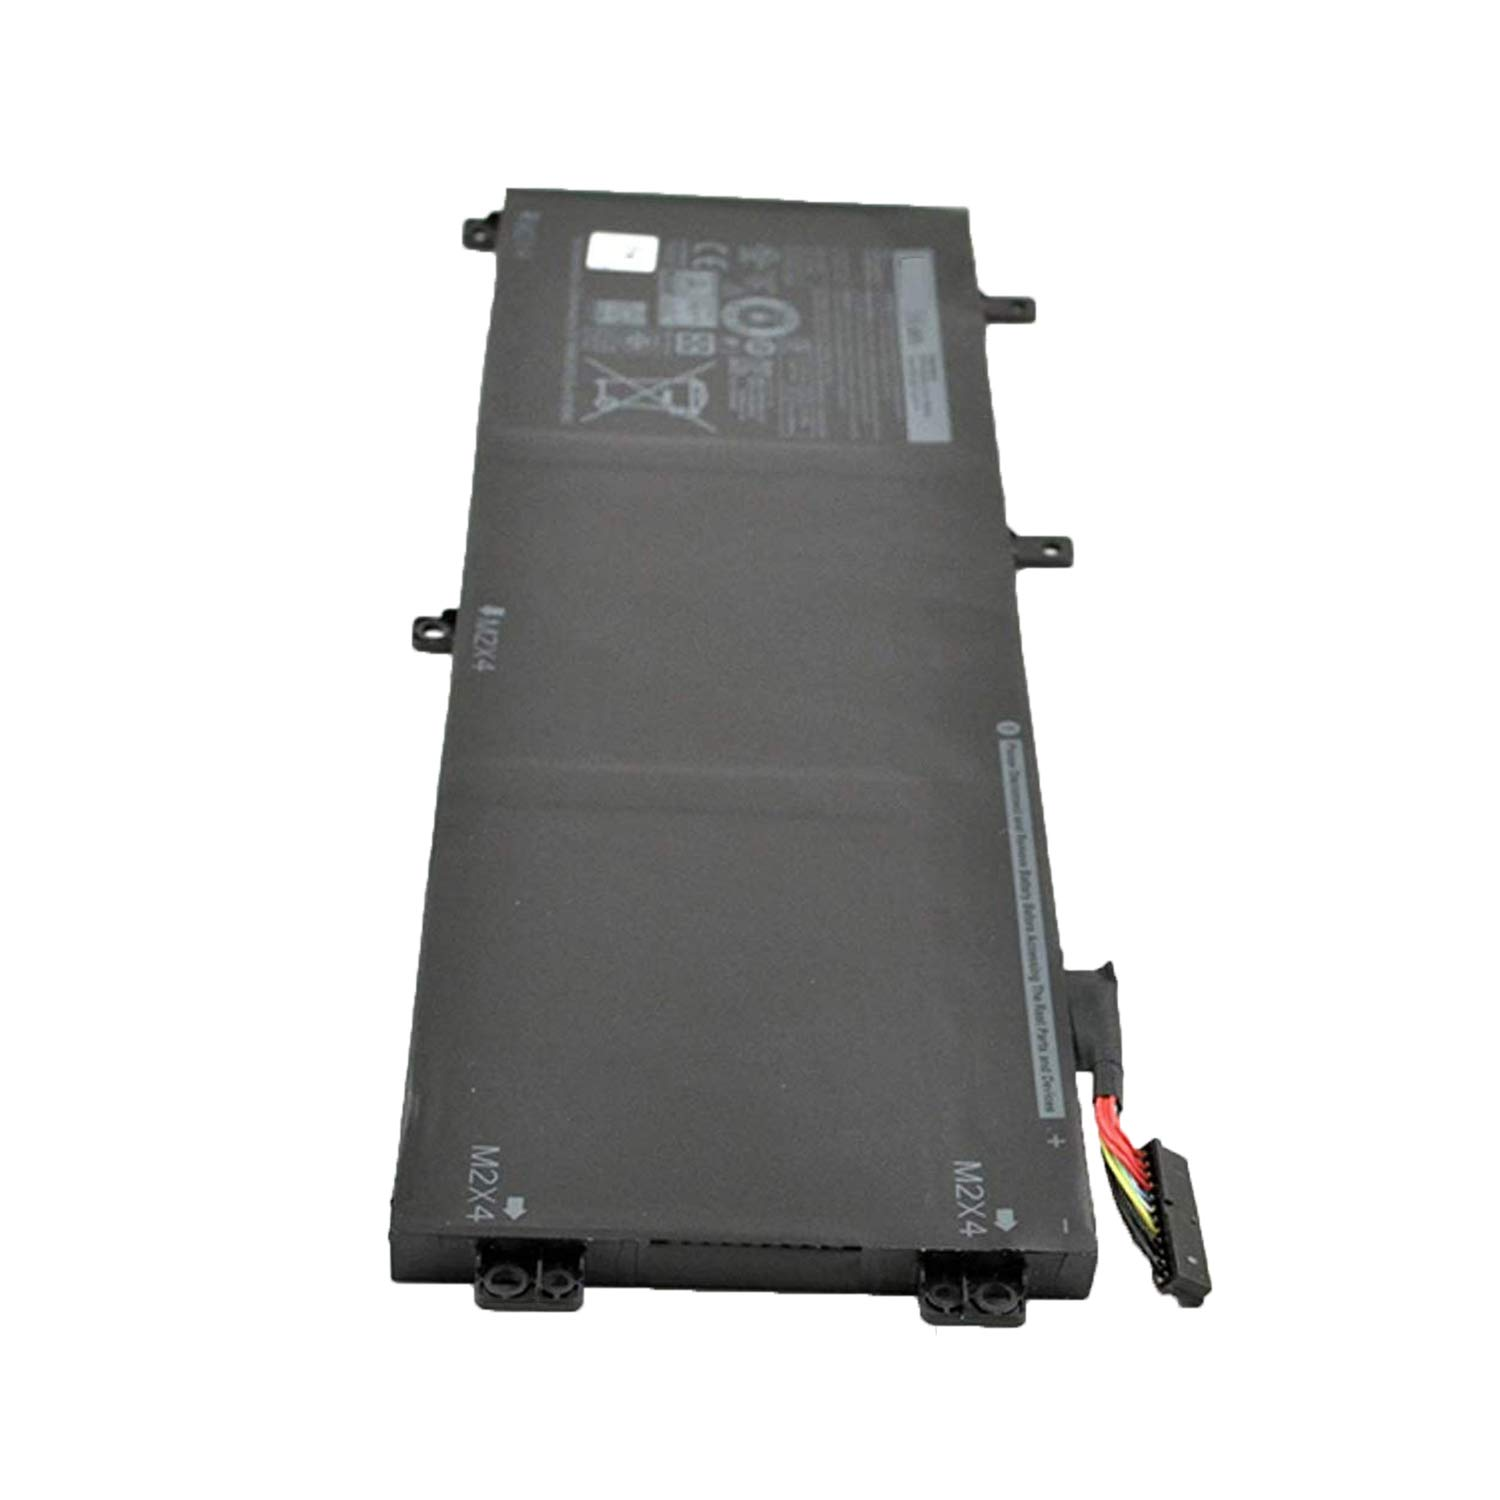 JIAZIJIA Compatible Laptop Battery with Dell H5H20 [11.4V 56Wh 4946mAh 3-Cell] XPS 15 9560 9570 Precision 5520 M5520 Series Notebook 6GPTY 62MJV M7R96 Black - 1 Year Warranty by JIAZIJIA (Image #5)